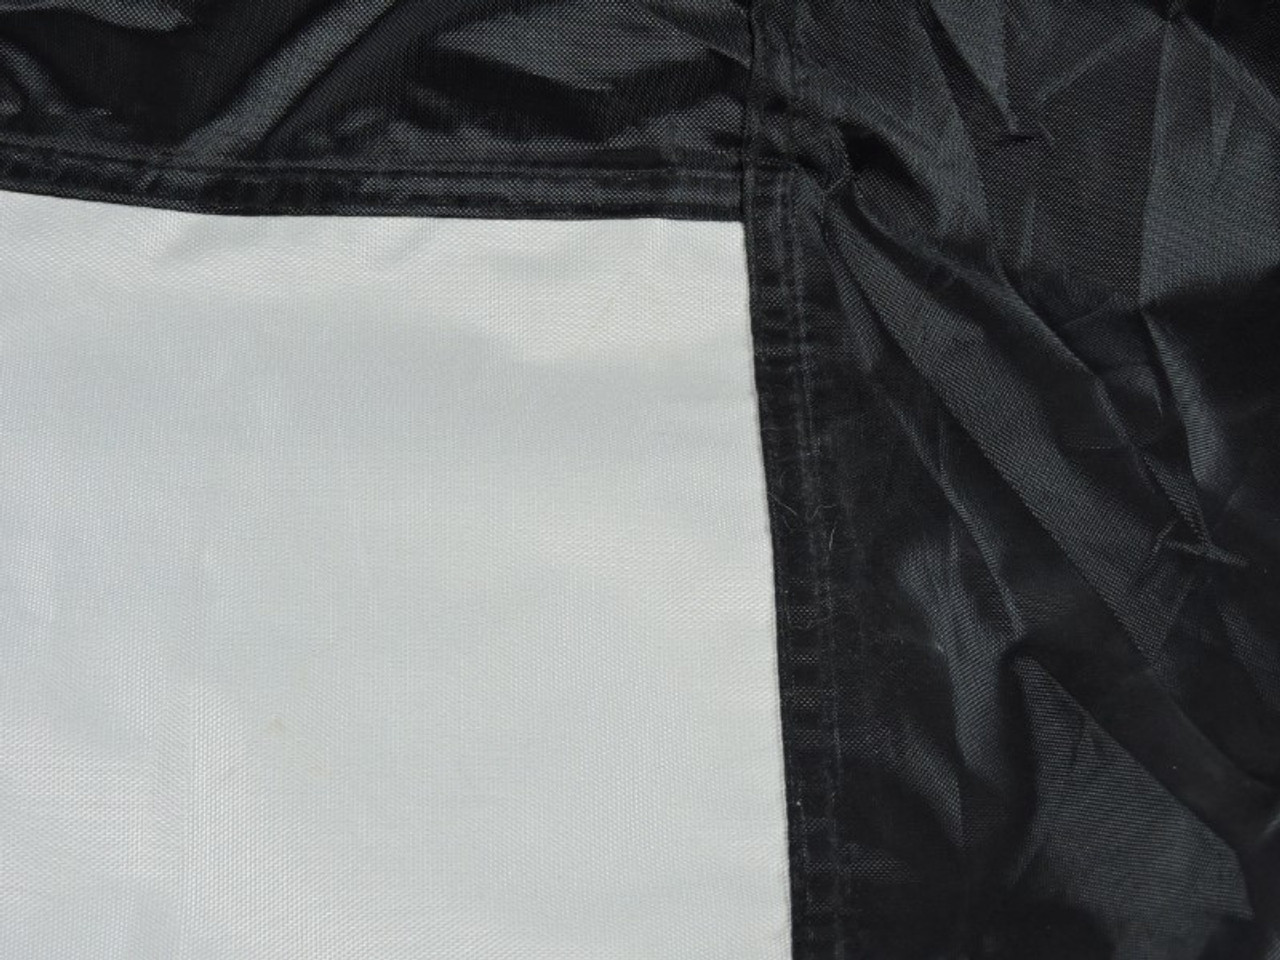 Heavy Duty TuffTex fabric. 600 Denier Lower and 420 Denier Upper. All Double Stitched.